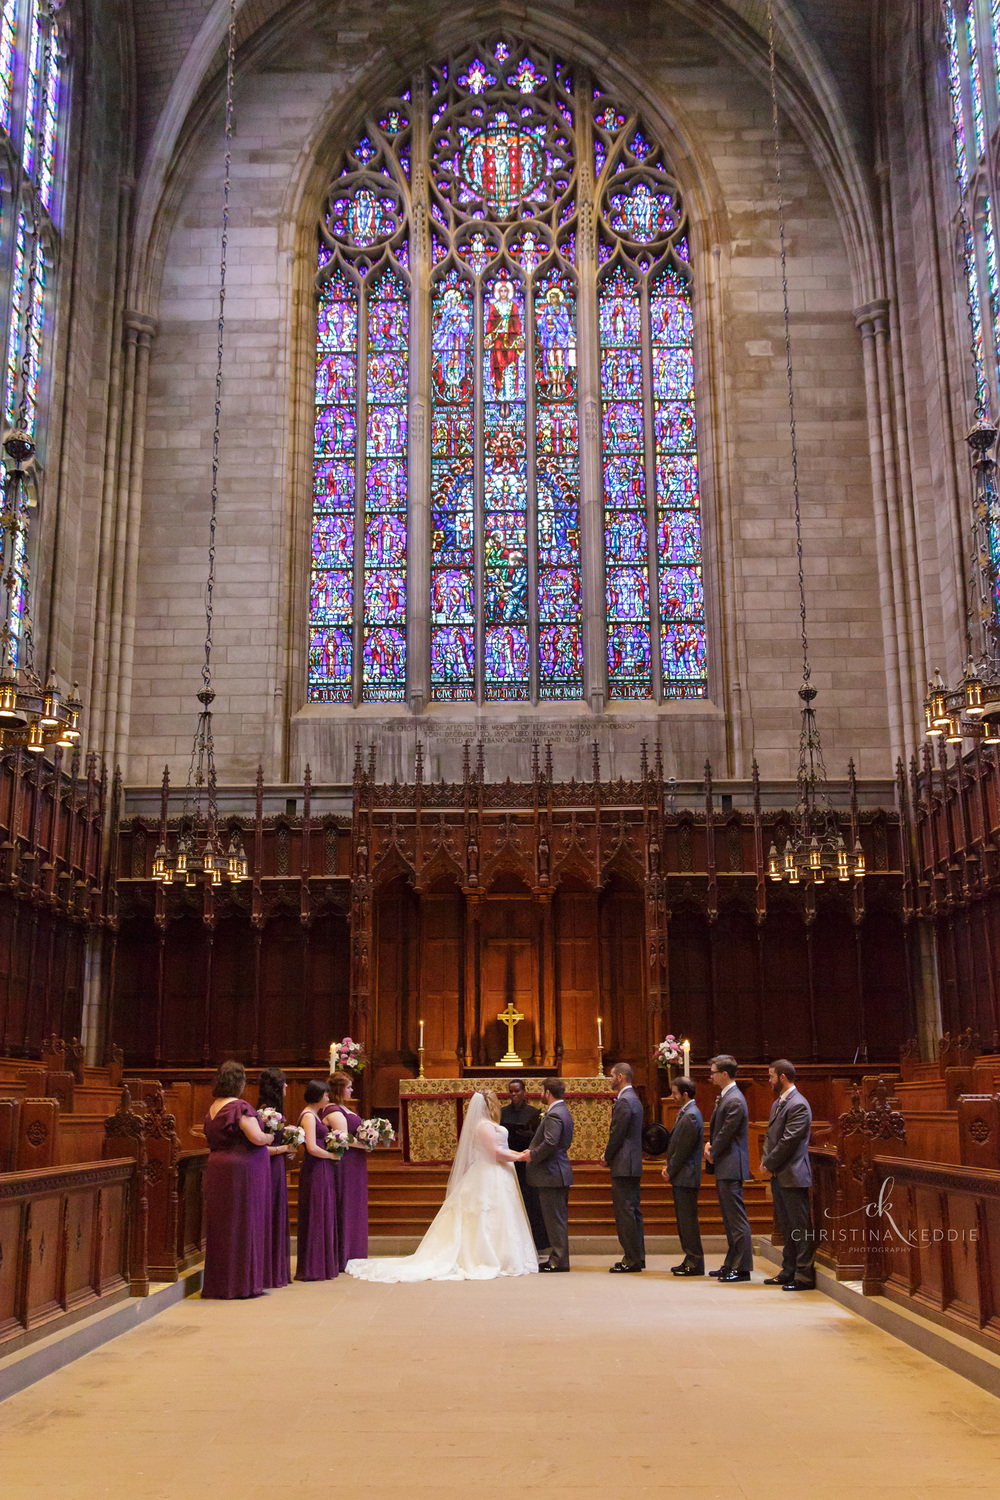 Wedding ceremony in university chapel with stained glass | Christina Keddie Photography | Princeton NJ wedding photographer